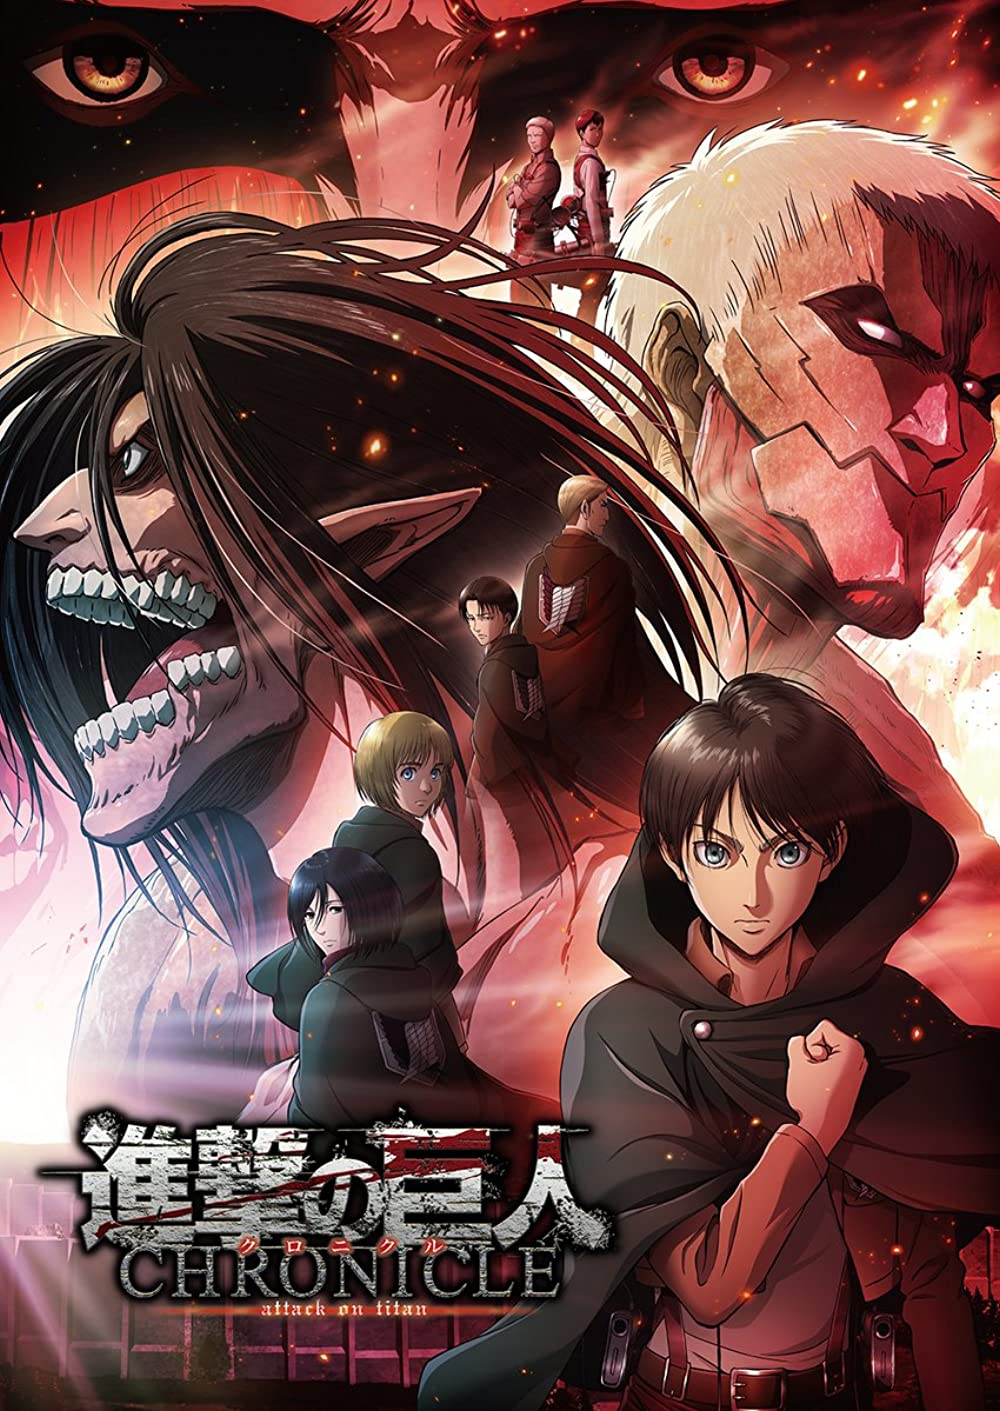 Watch Attack on Titan: Chronicle Online